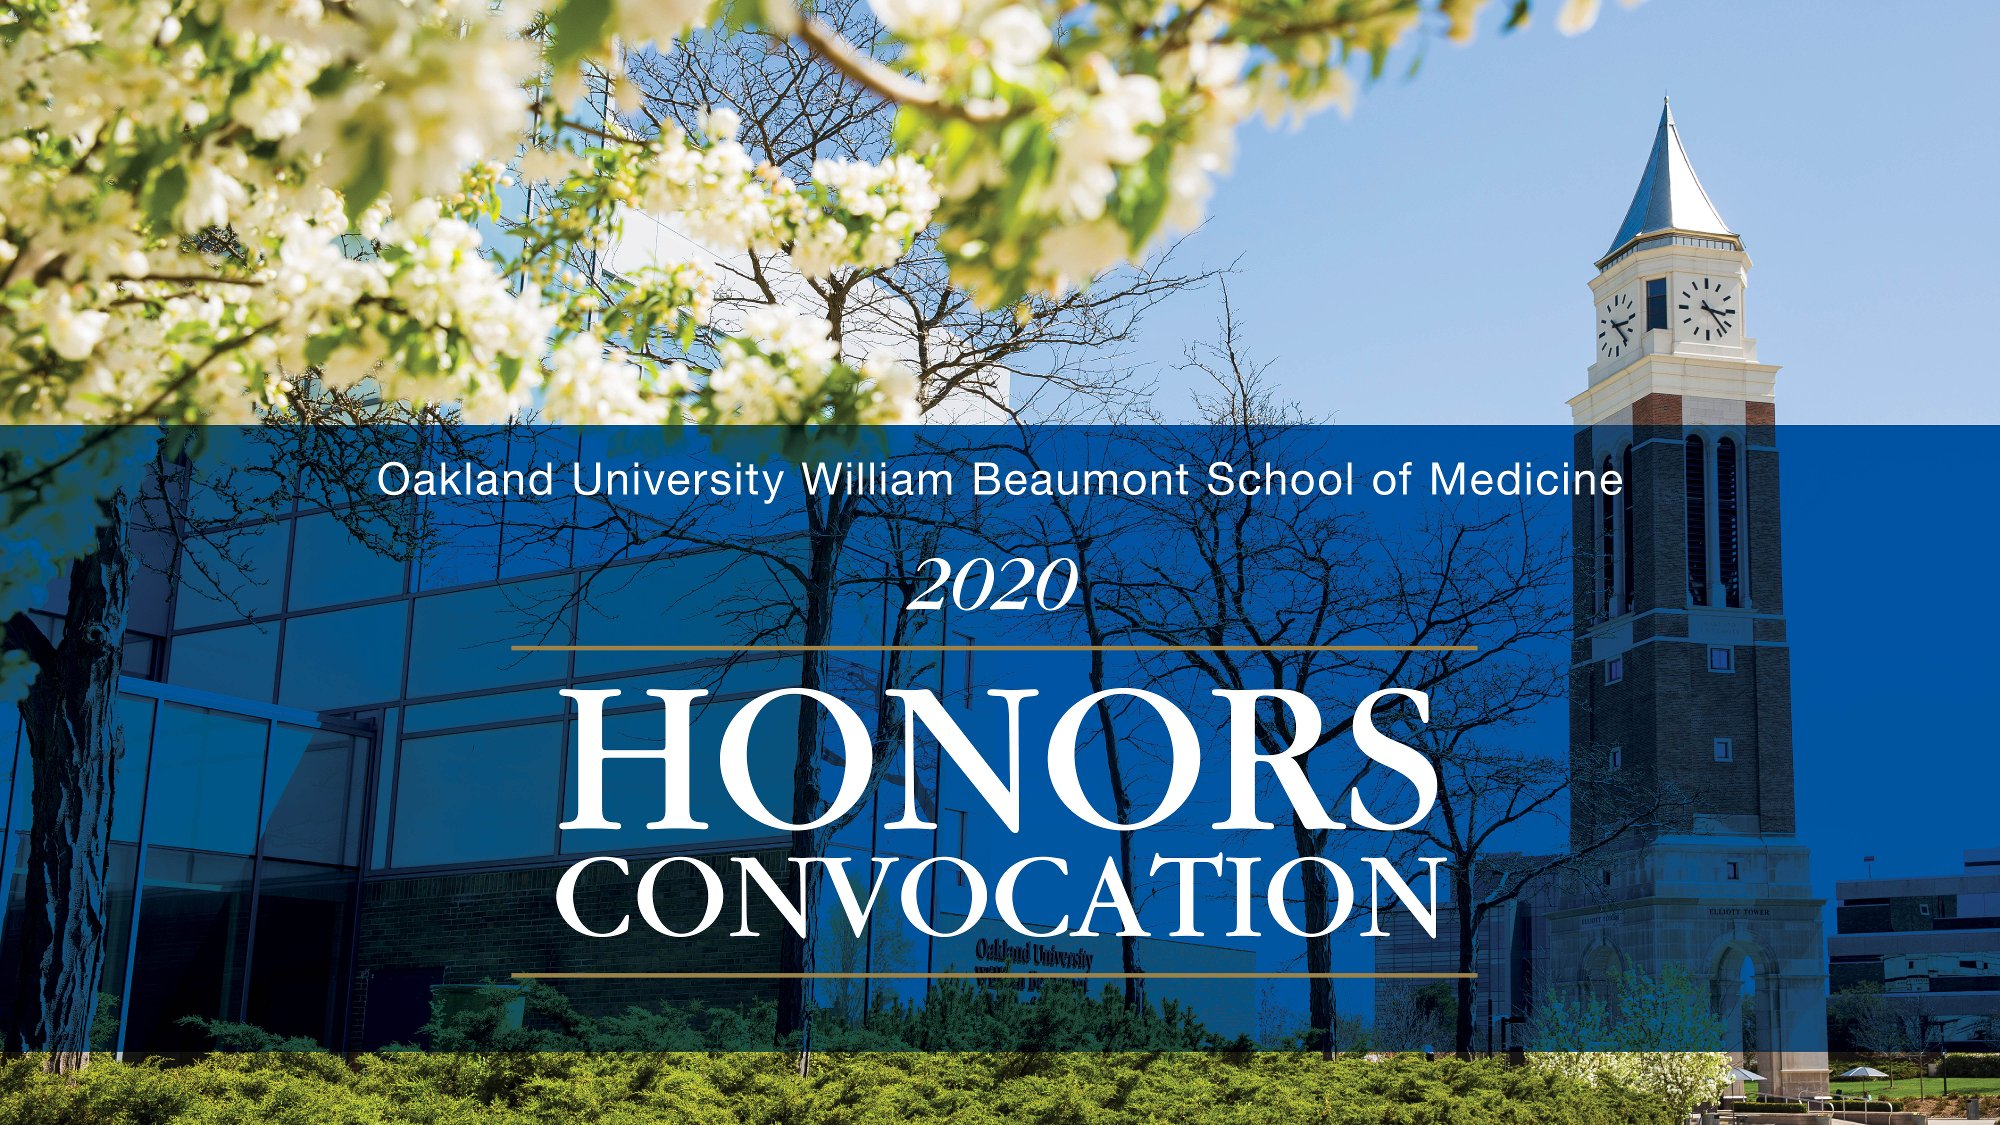 An image showing the 2020 Honors Convocation logo